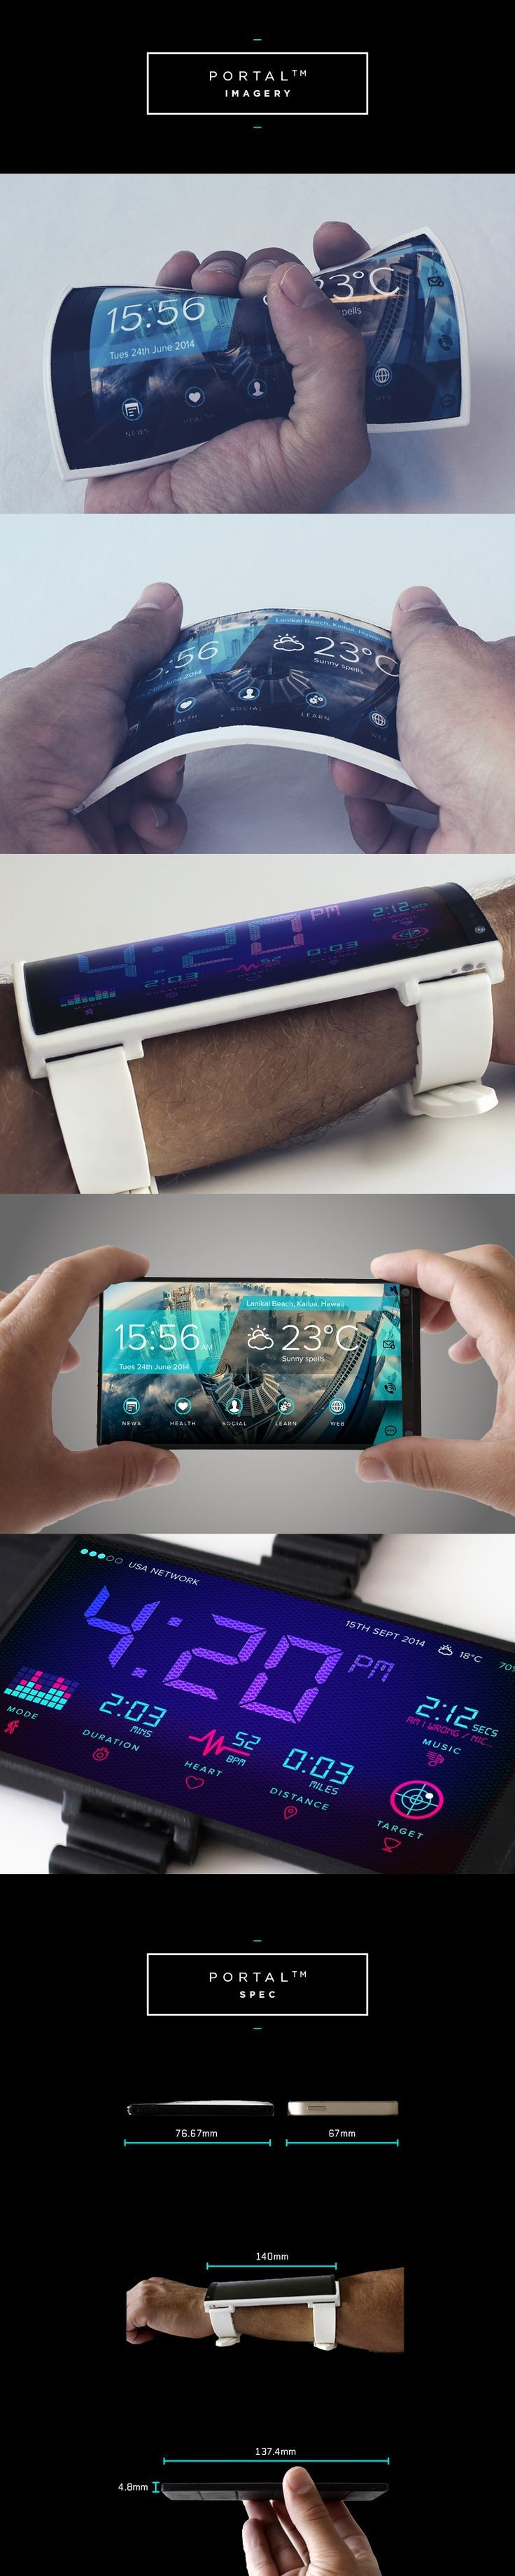 Portable wearable smartphone portable technology tech technology ideas smartphone